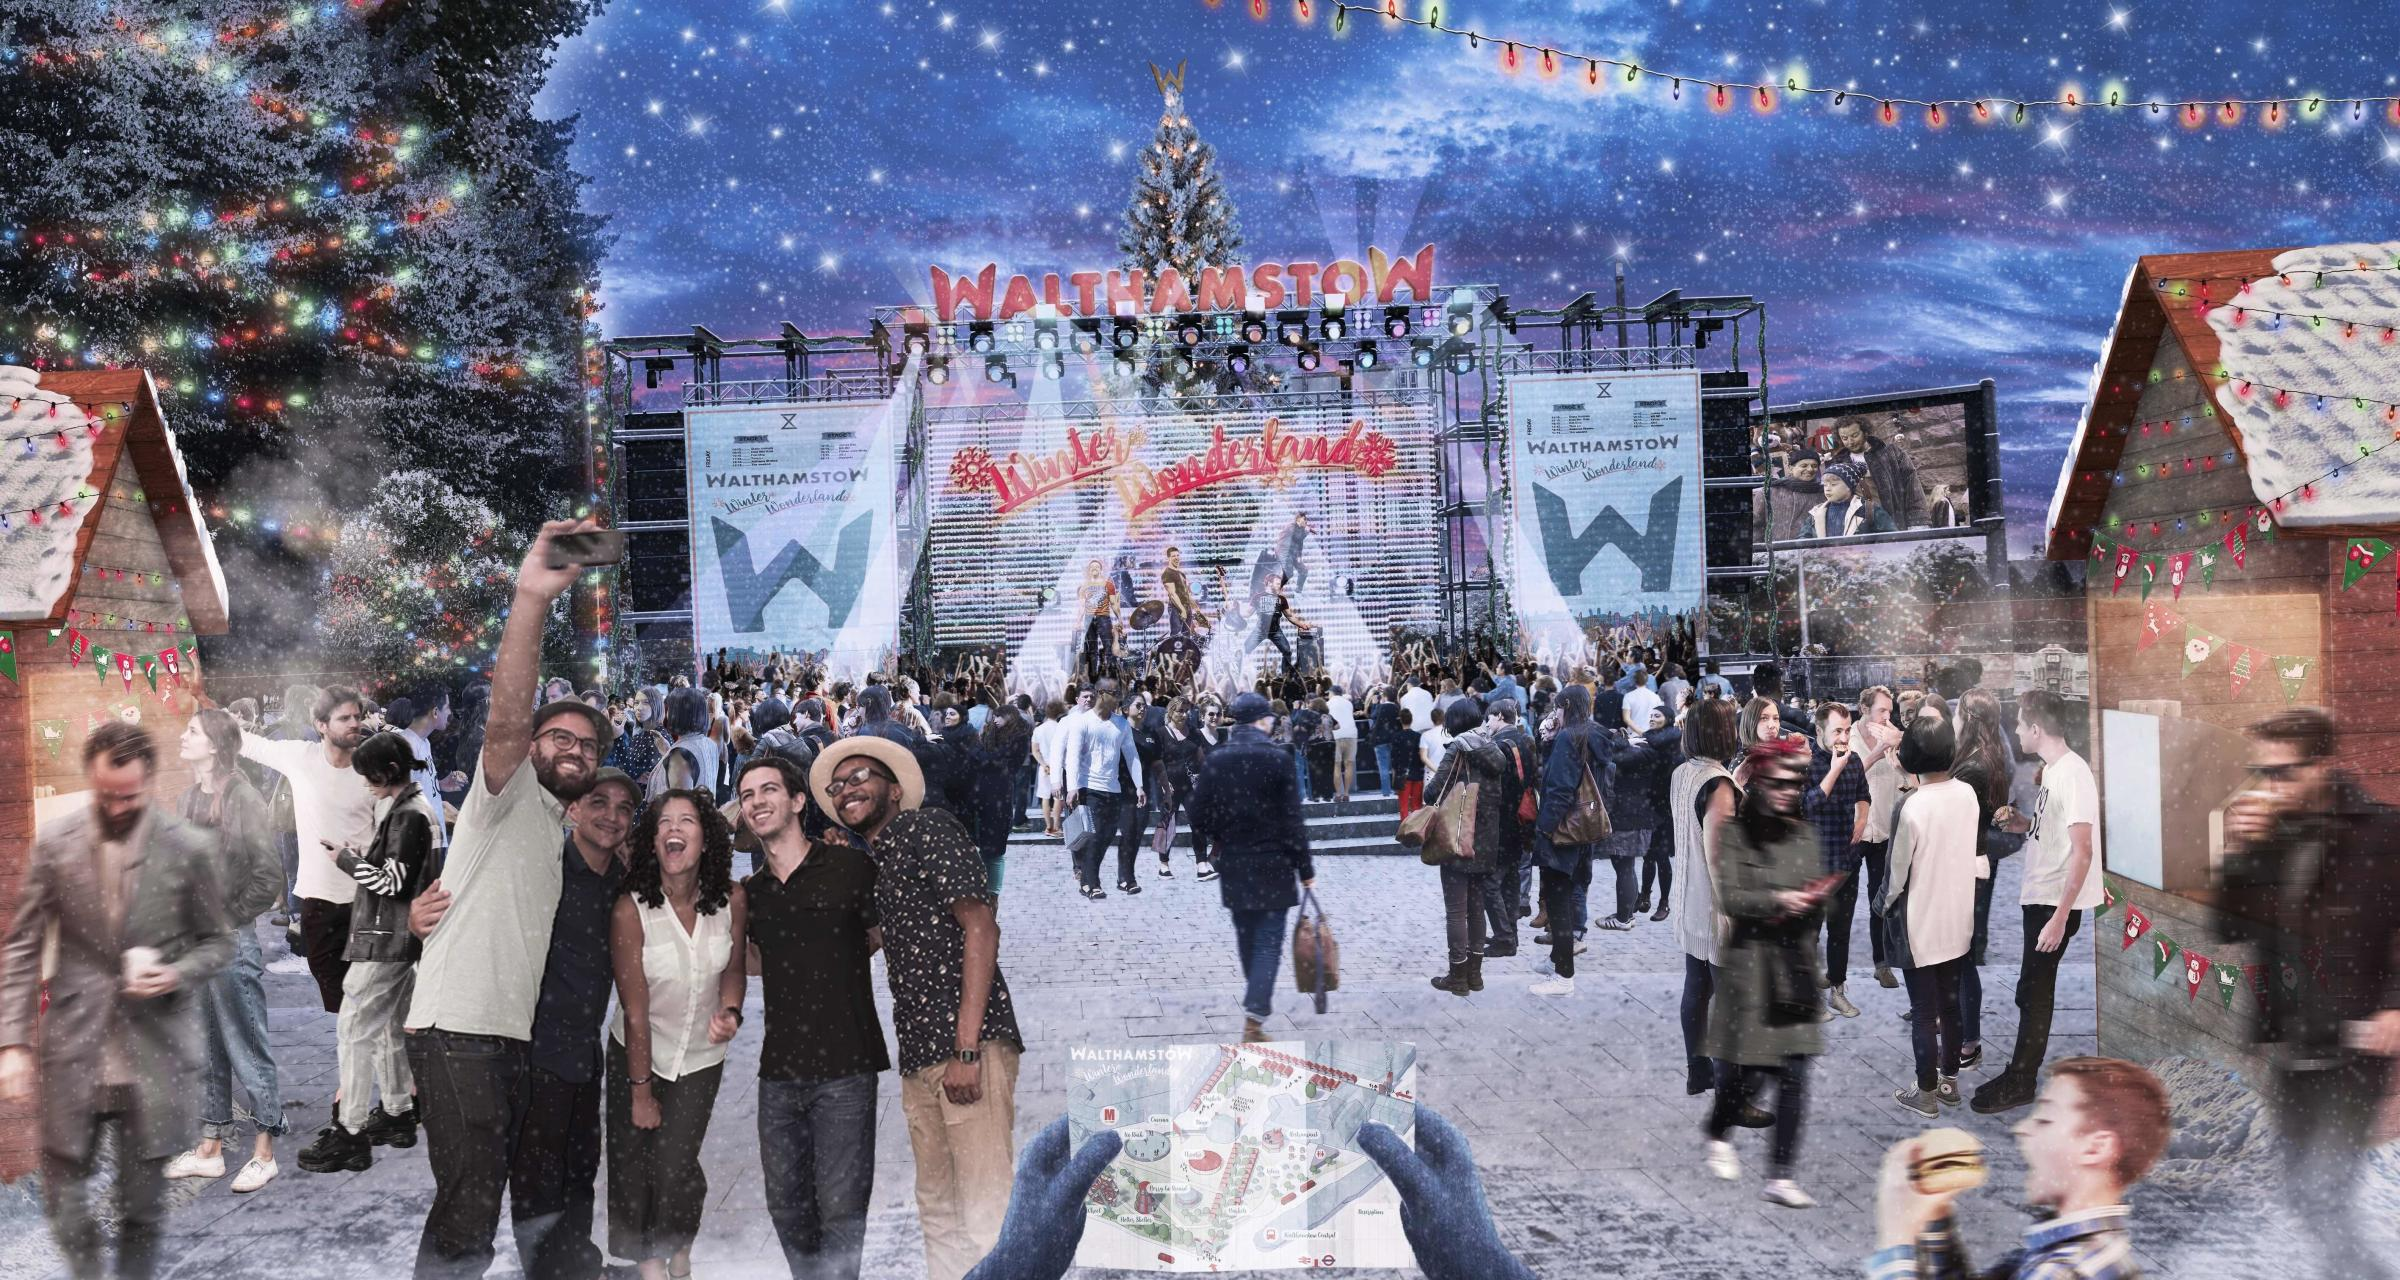 The first ever Walthamstow Winter Wonderland Christmas market will launch in December